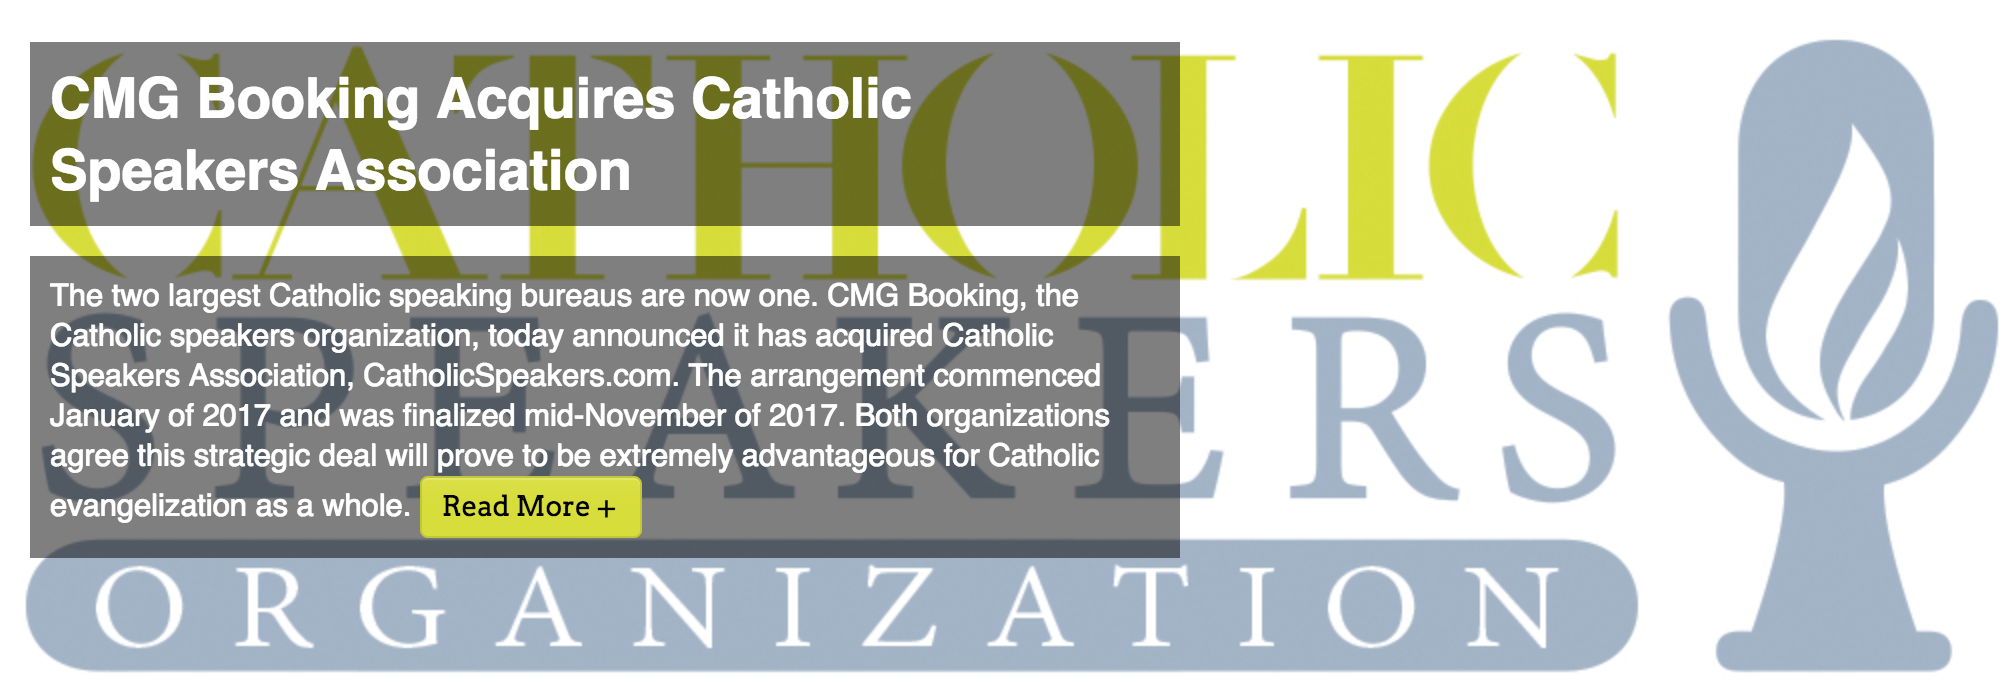 CMG Booking Acquires Catholic Speakers Association cs